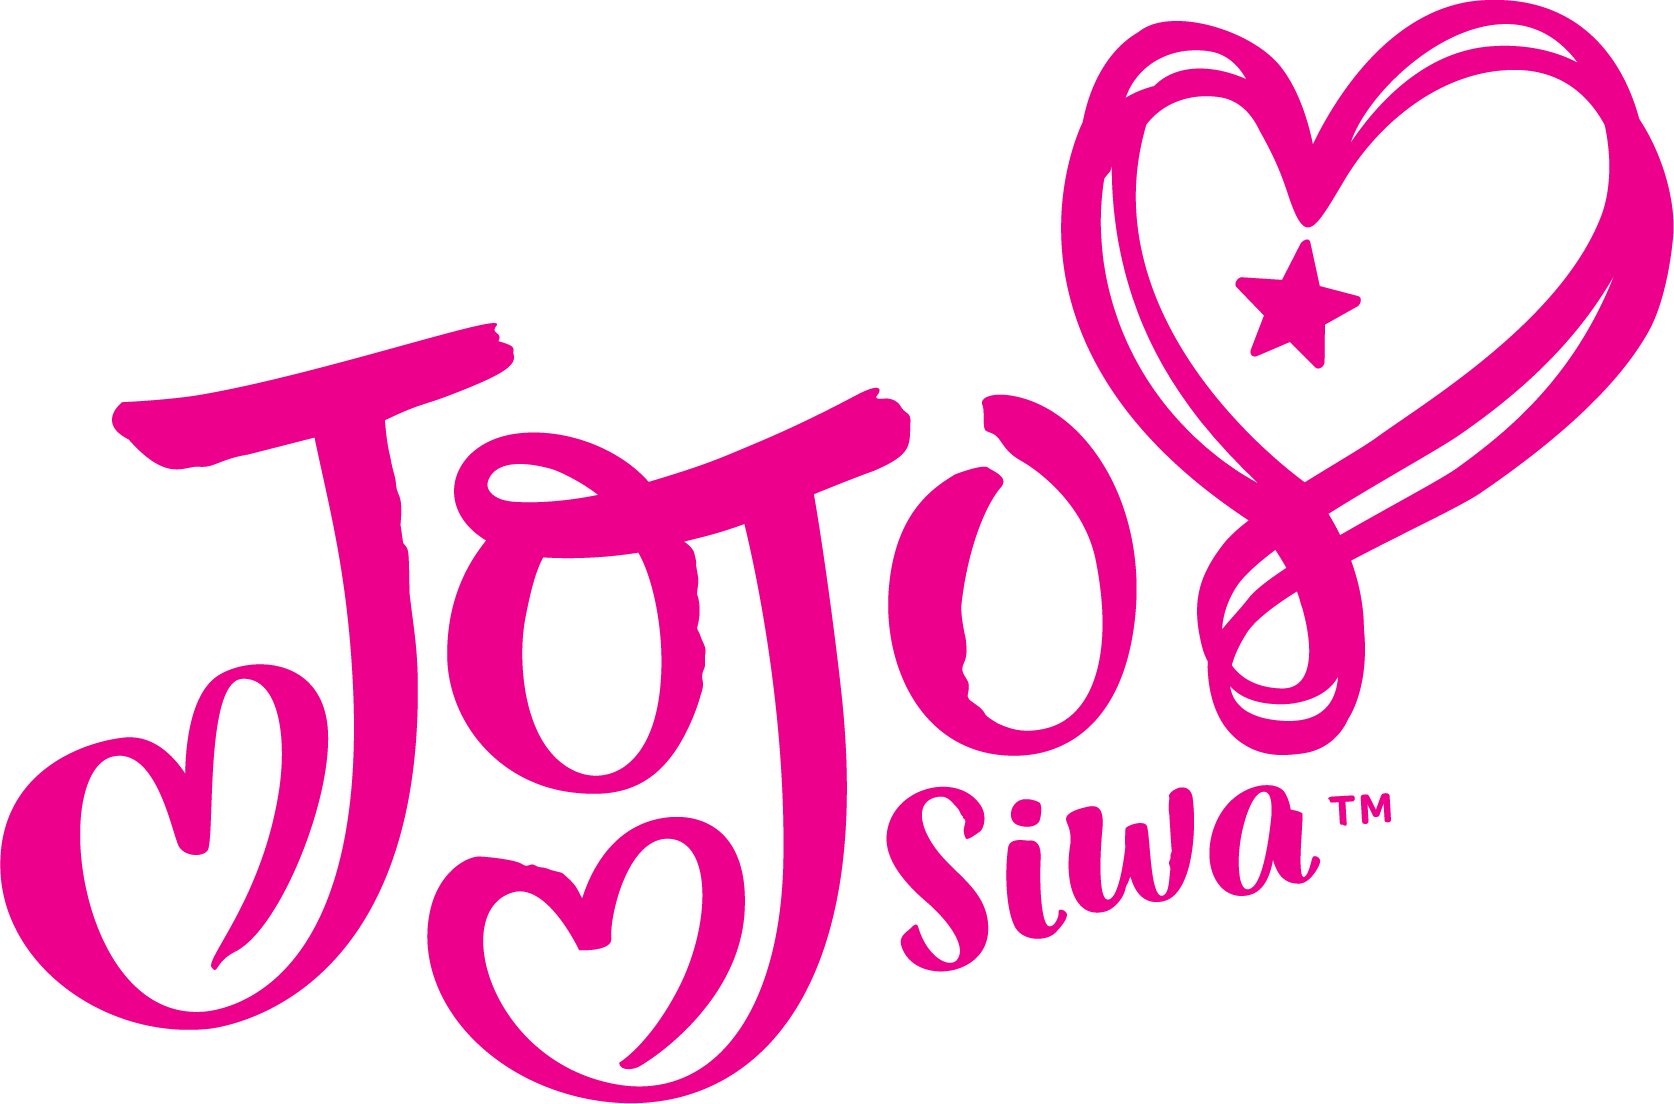 Jojo text png. Siwa logo transparent stickpng